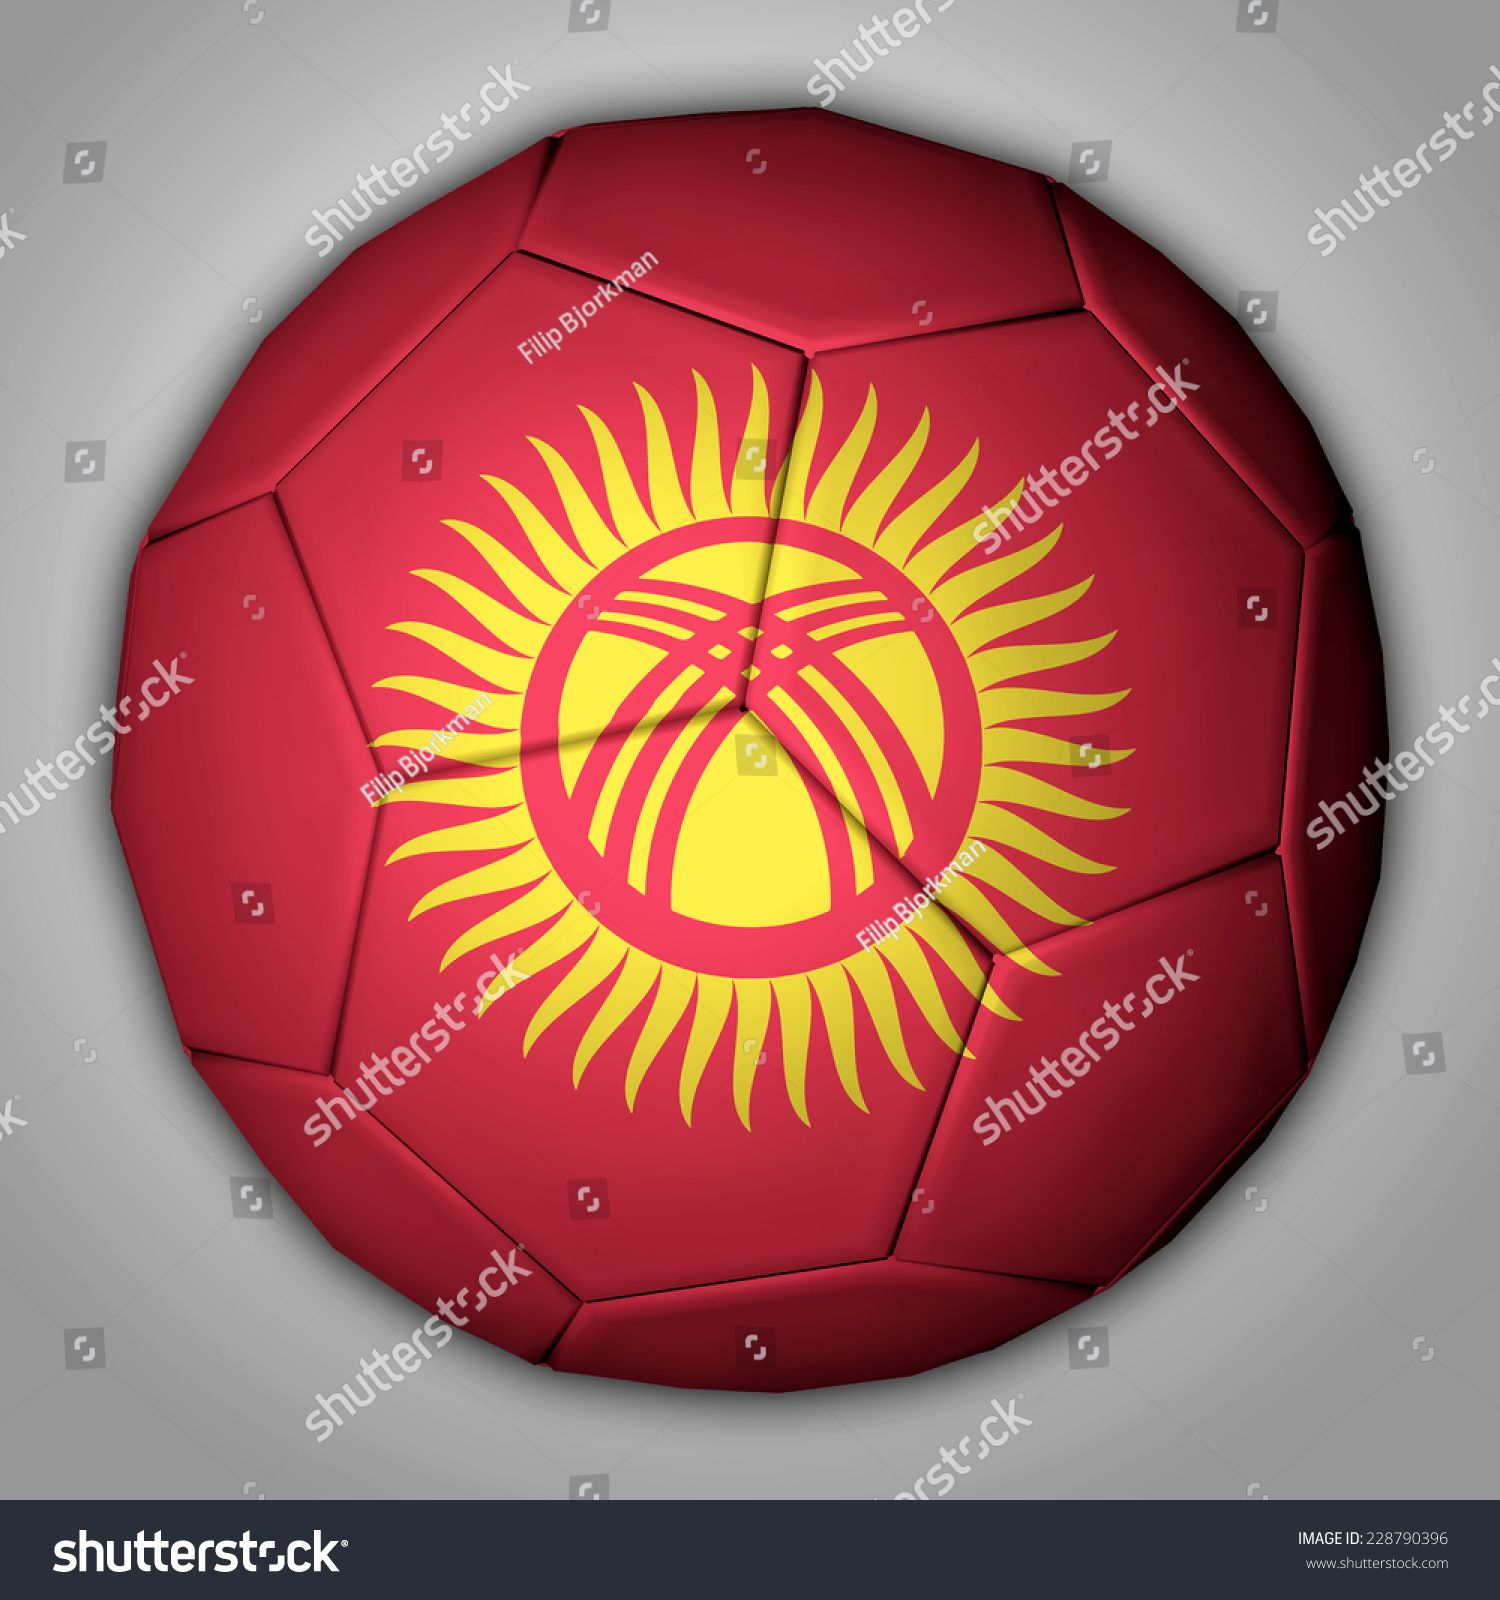 Illustration Of A Football With Flag Inside Kyrgyzstan Ad Sponsored Football Illustration Kyrgyzstan F In 2020 Kyrgyzstan Flag Flag Football Instagram Template